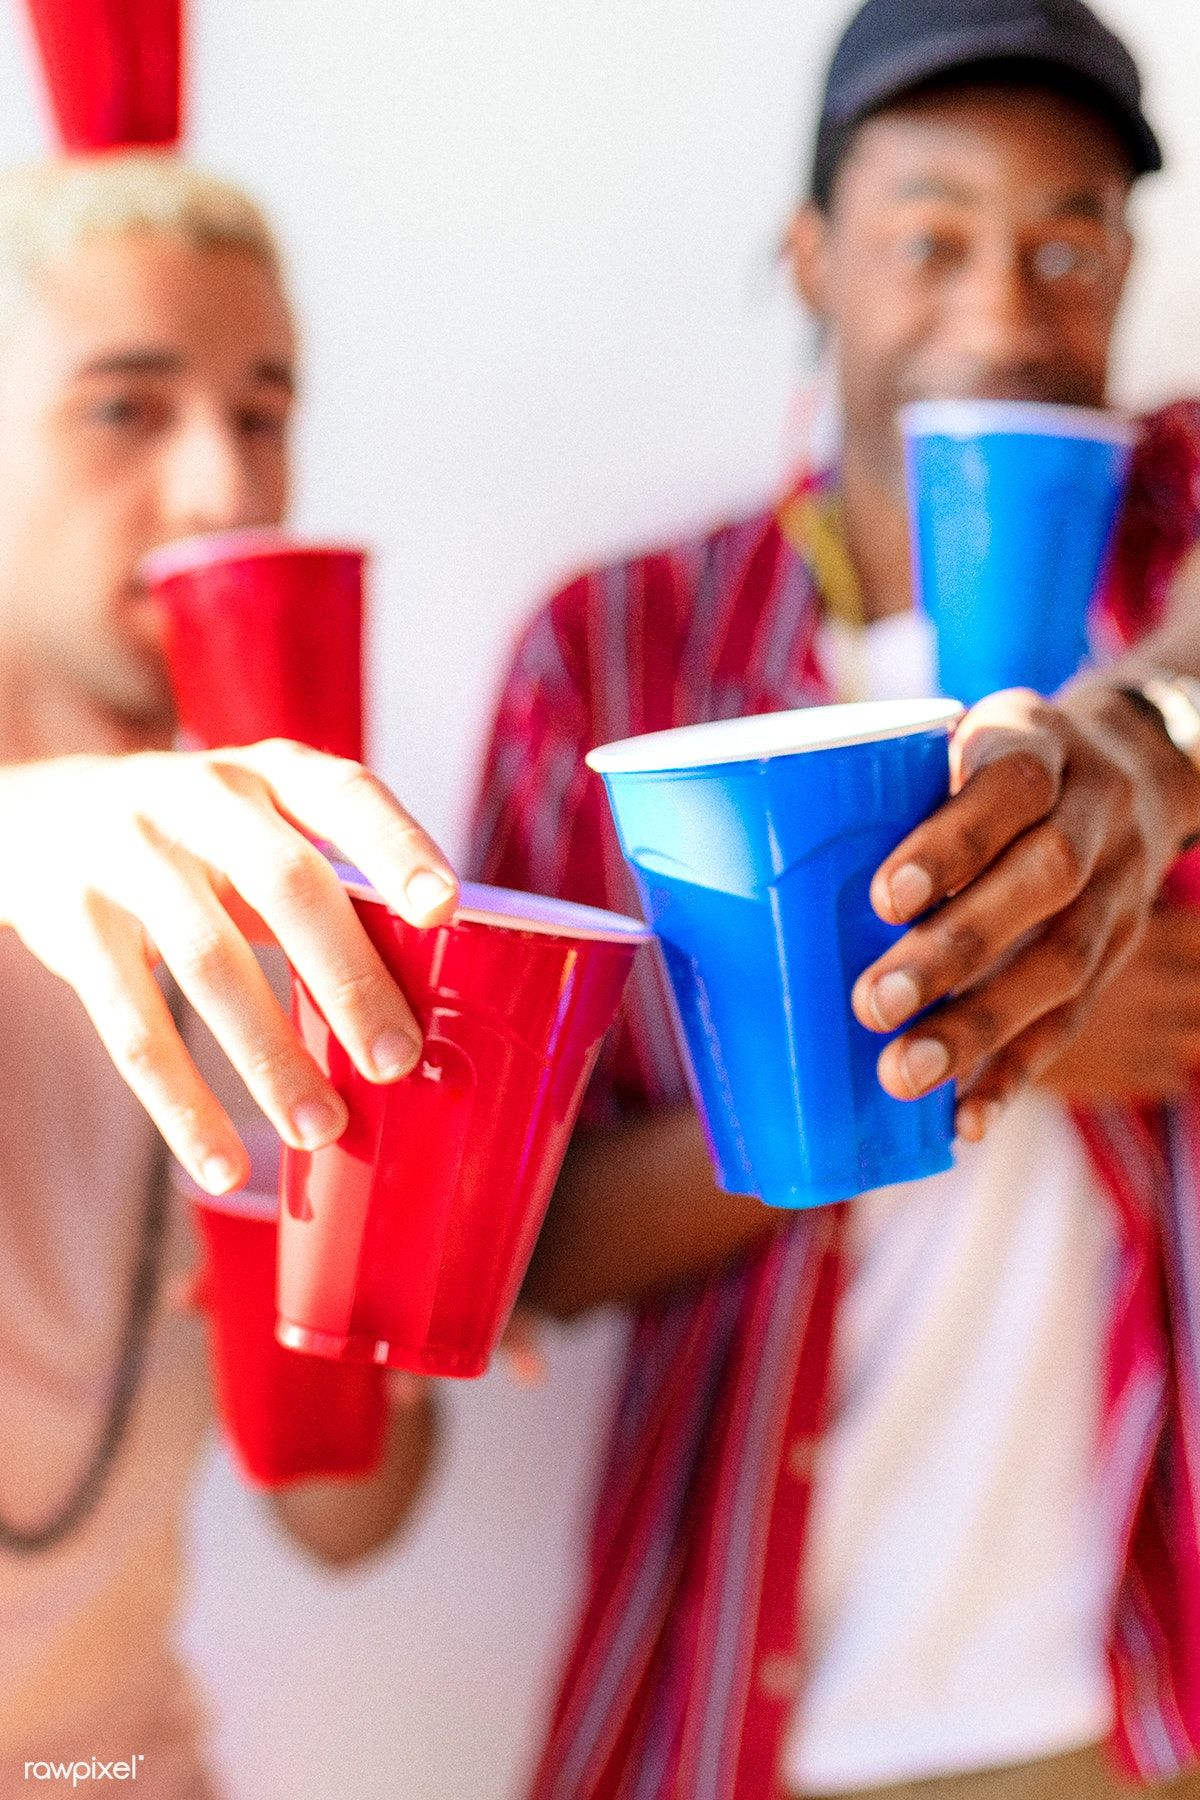 Download premium photo of Cheerful young men holding cups